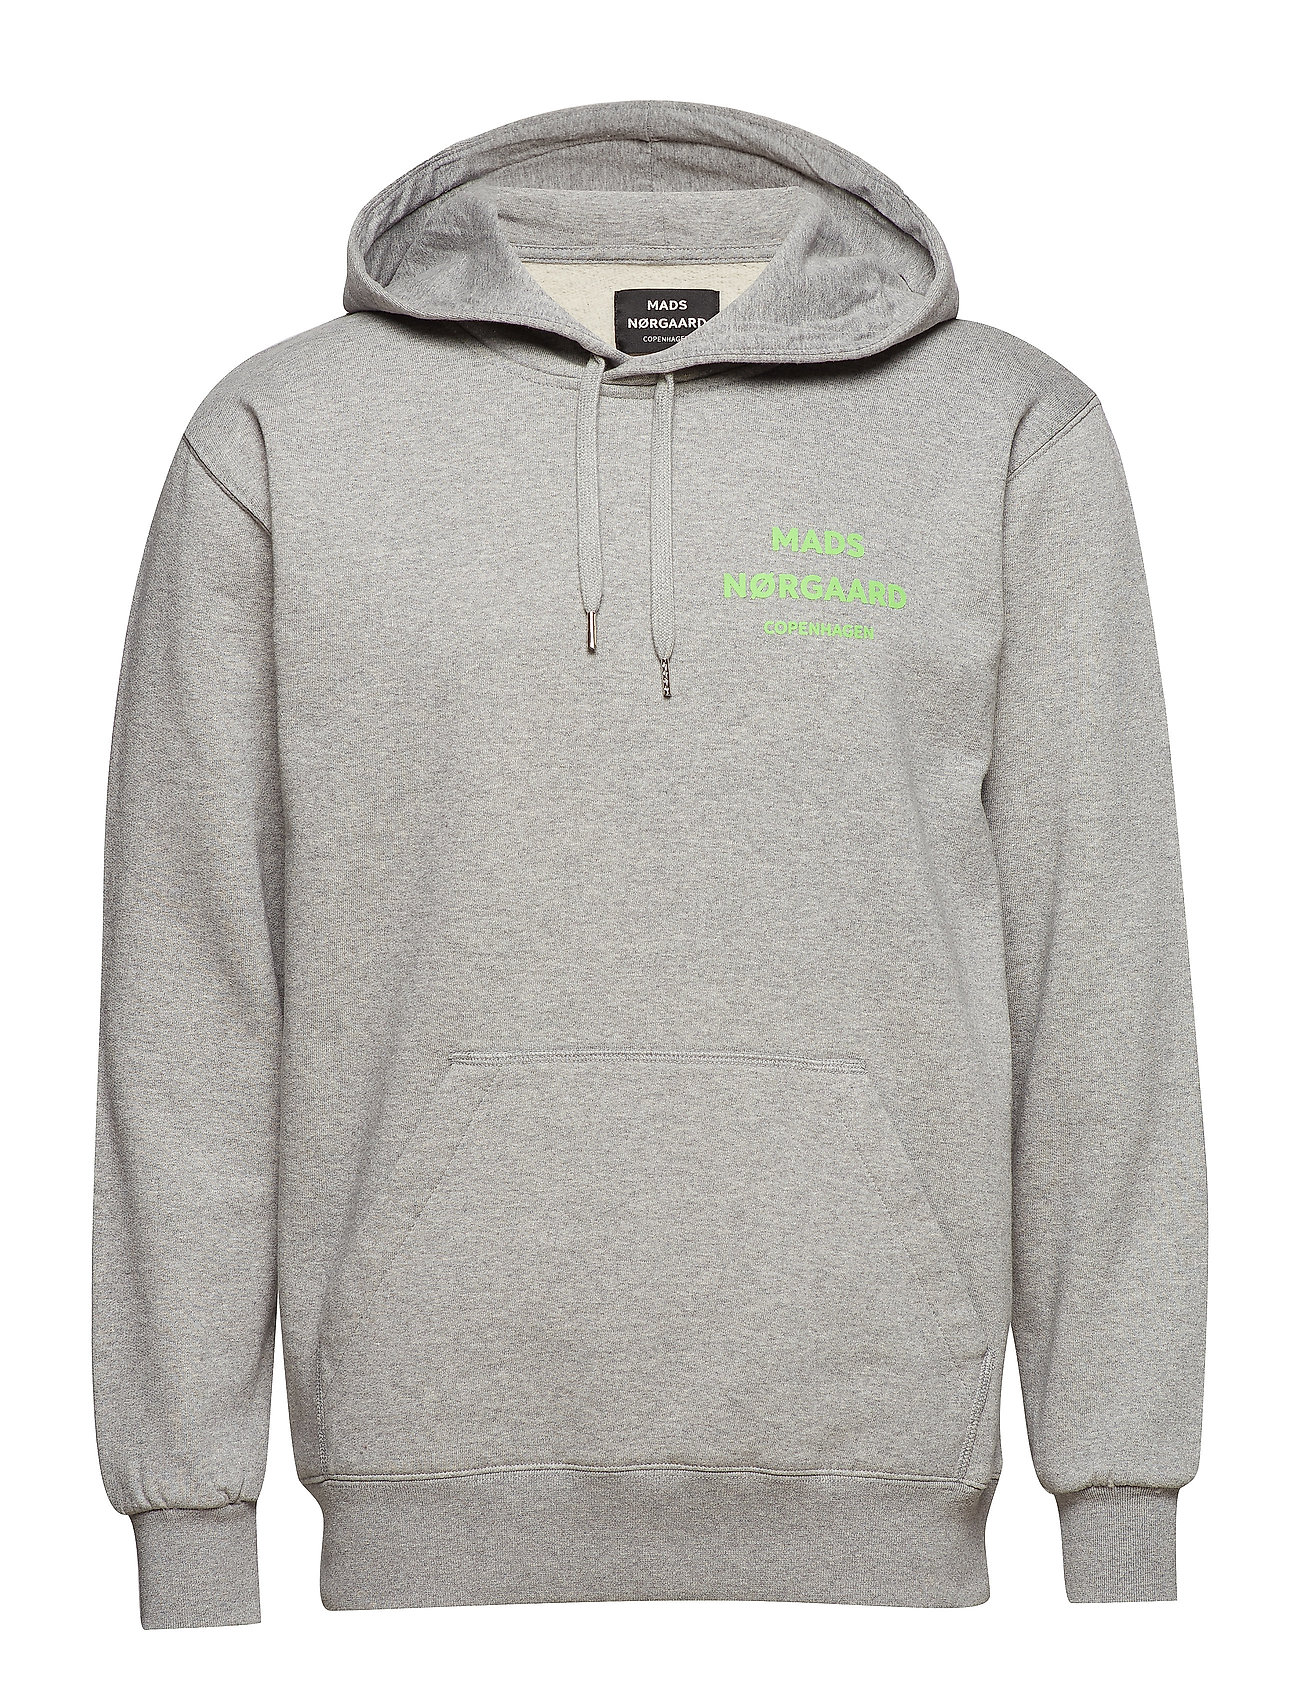 Mads Nørgaard Sustainable Cotton Hoodie - GREY MELANGE